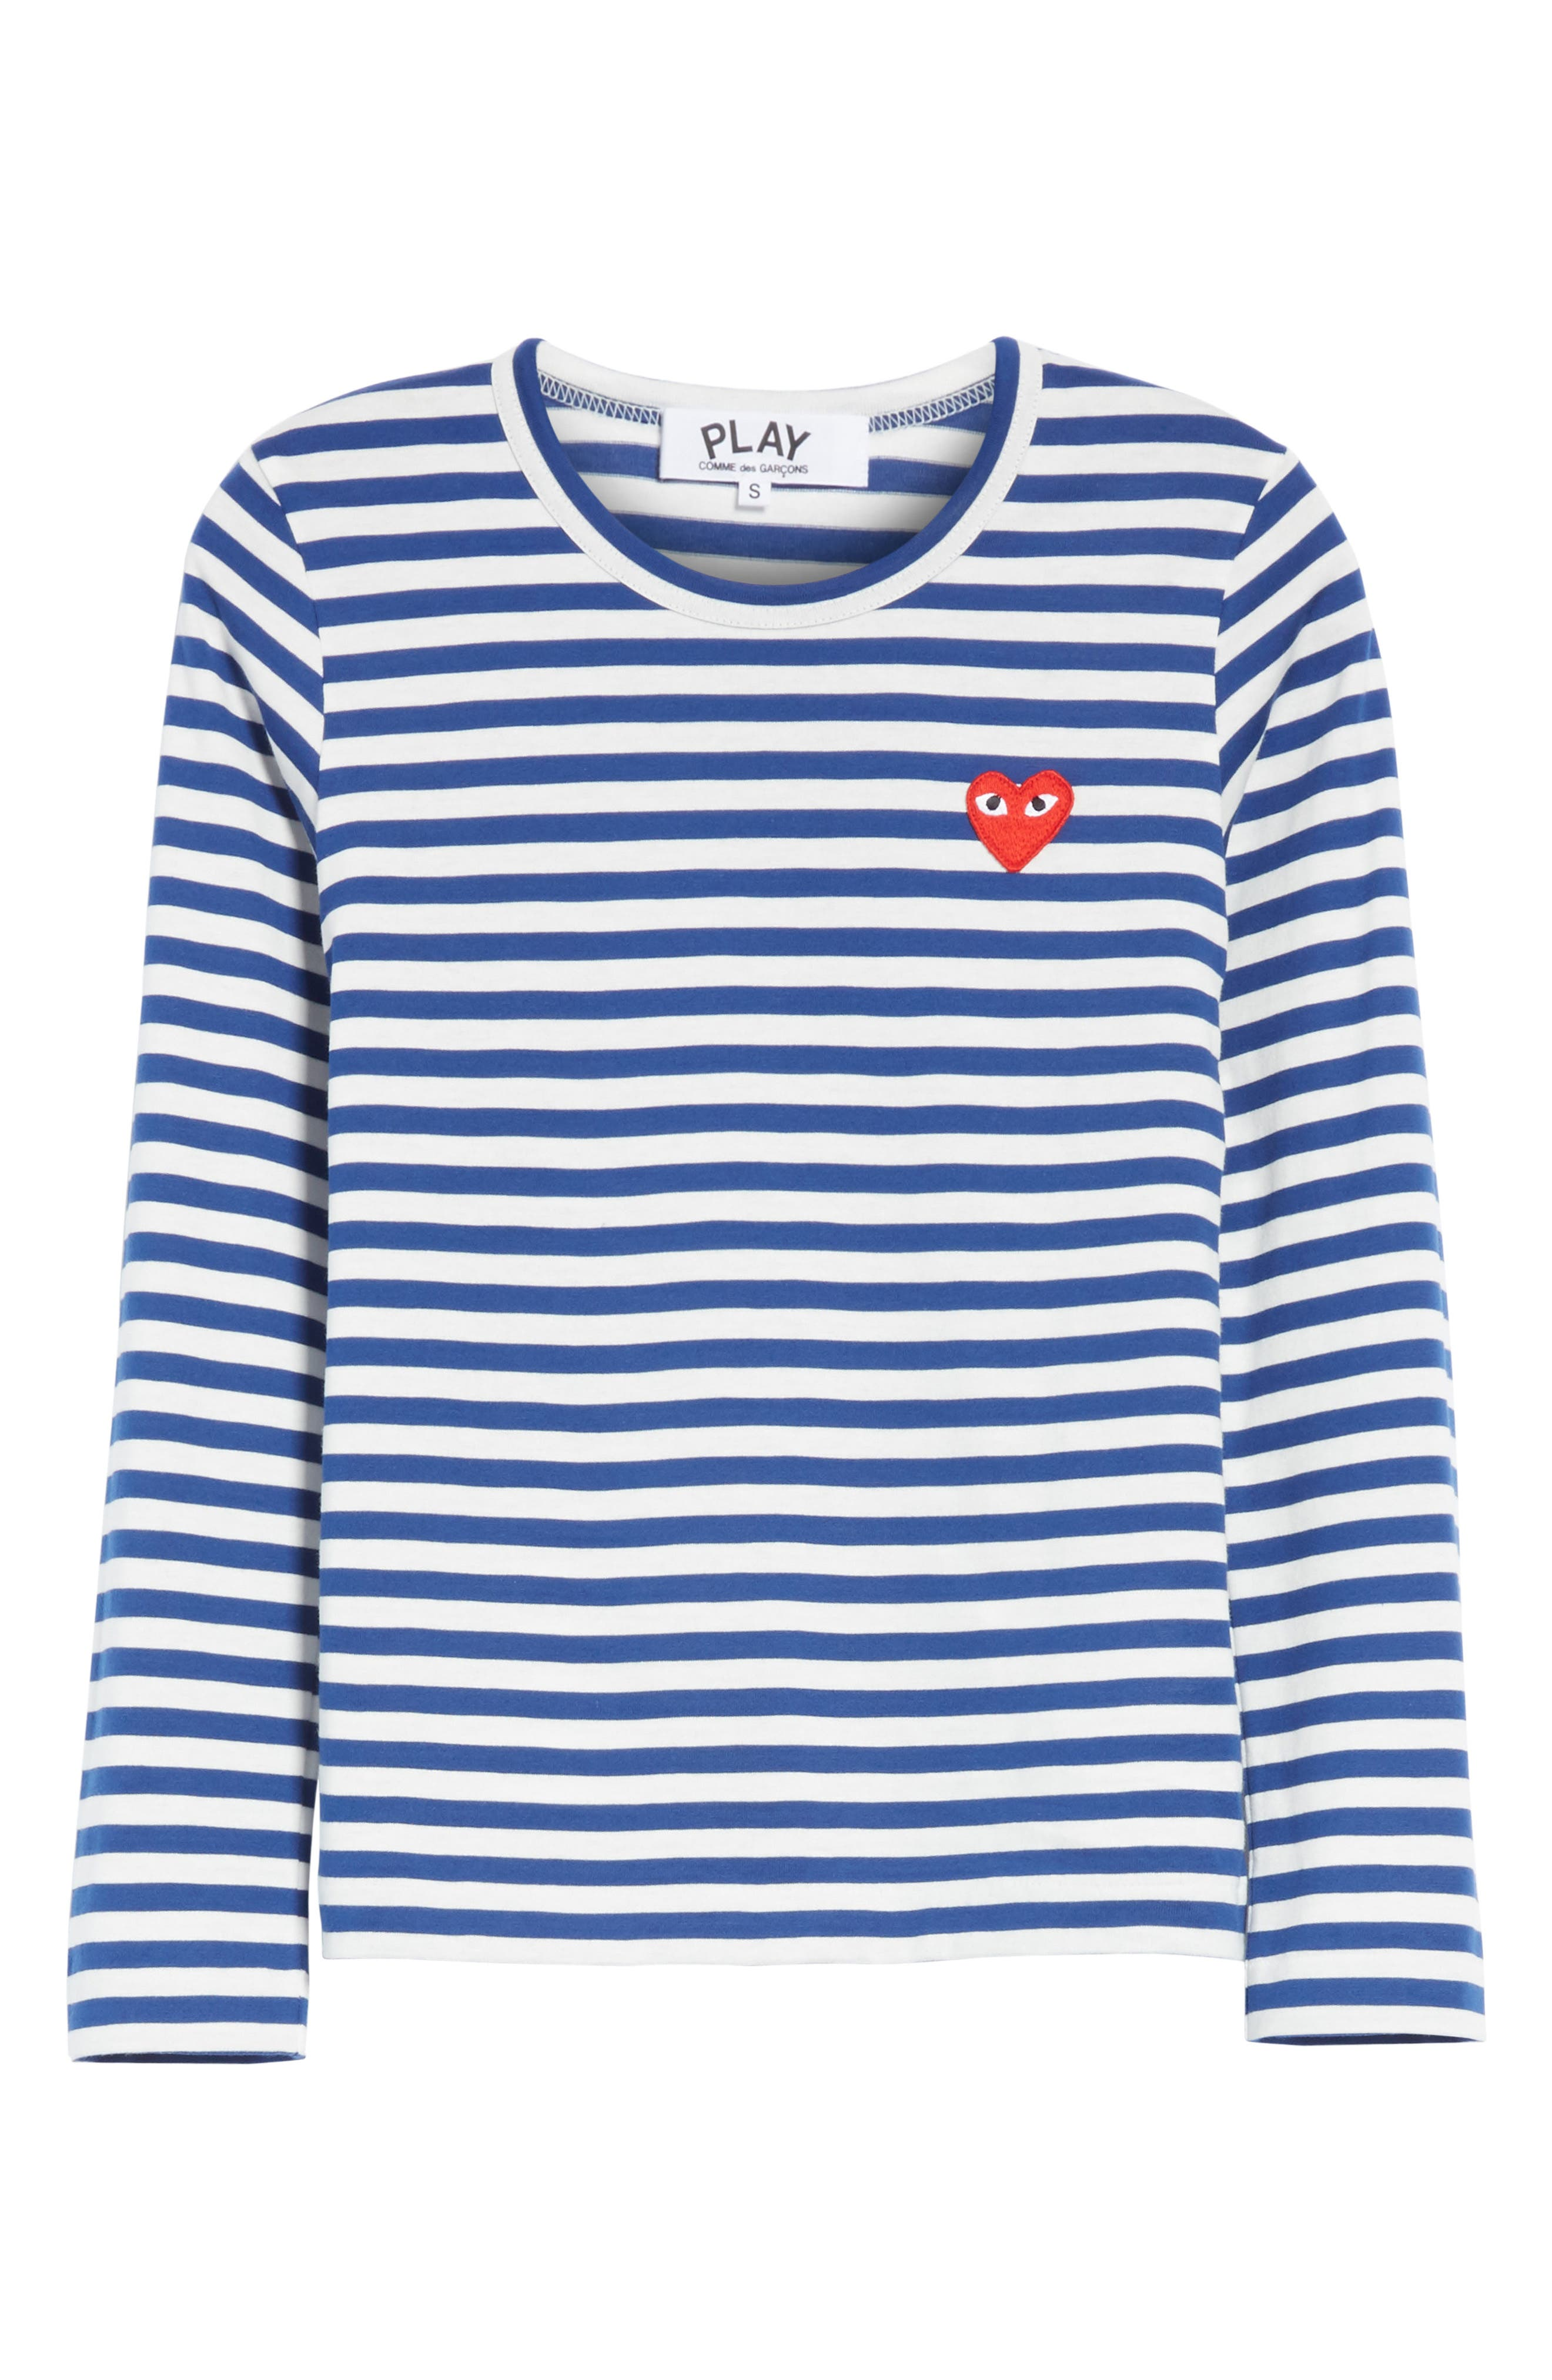 Comme des Garçons PLAY Stripe Cotton Tee,                             Alternate thumbnail 6, color,                             Navy/ White